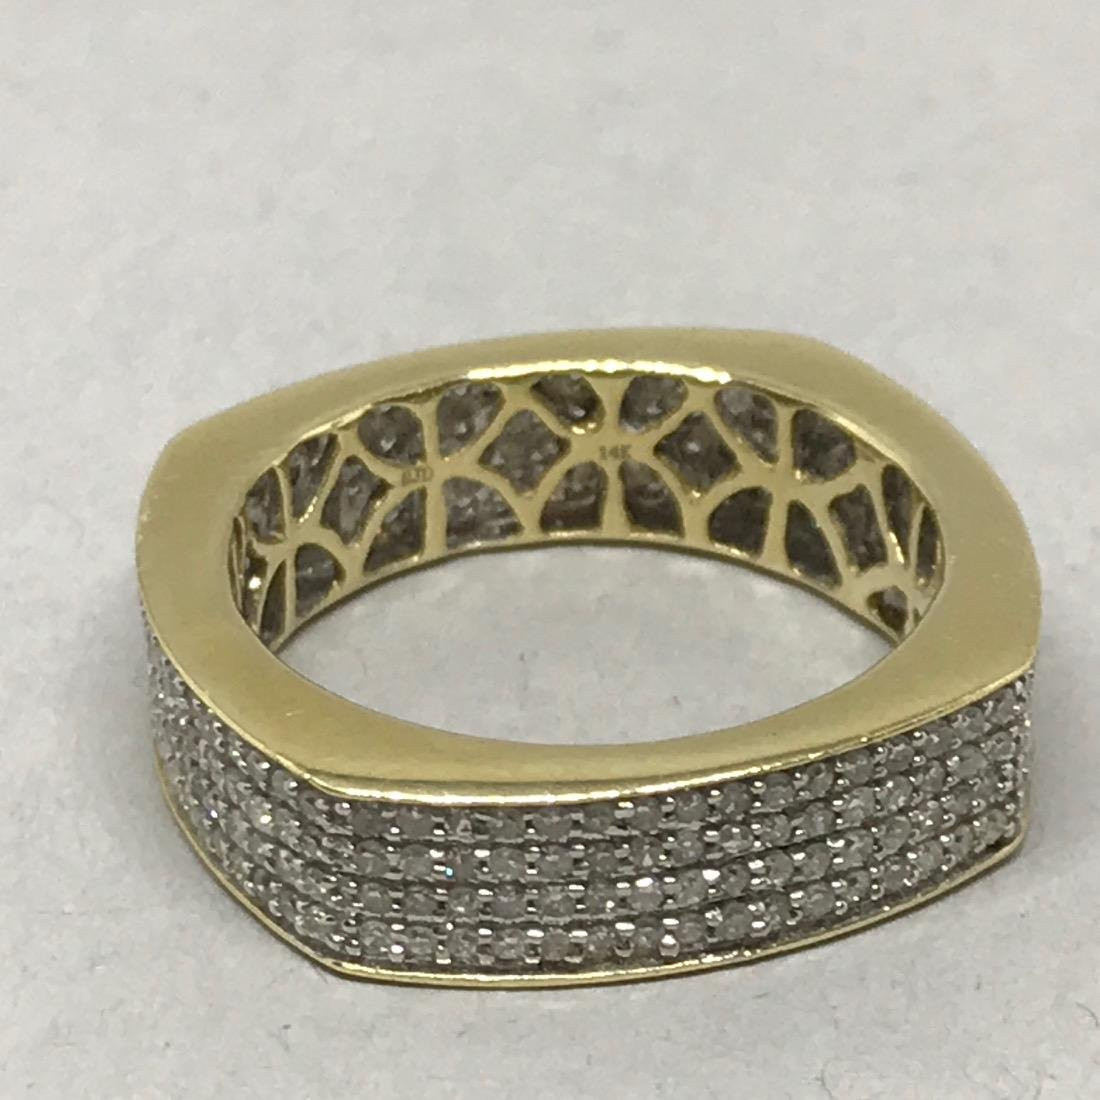 14Kt Gold Square Band with Pave Diamonds - 3